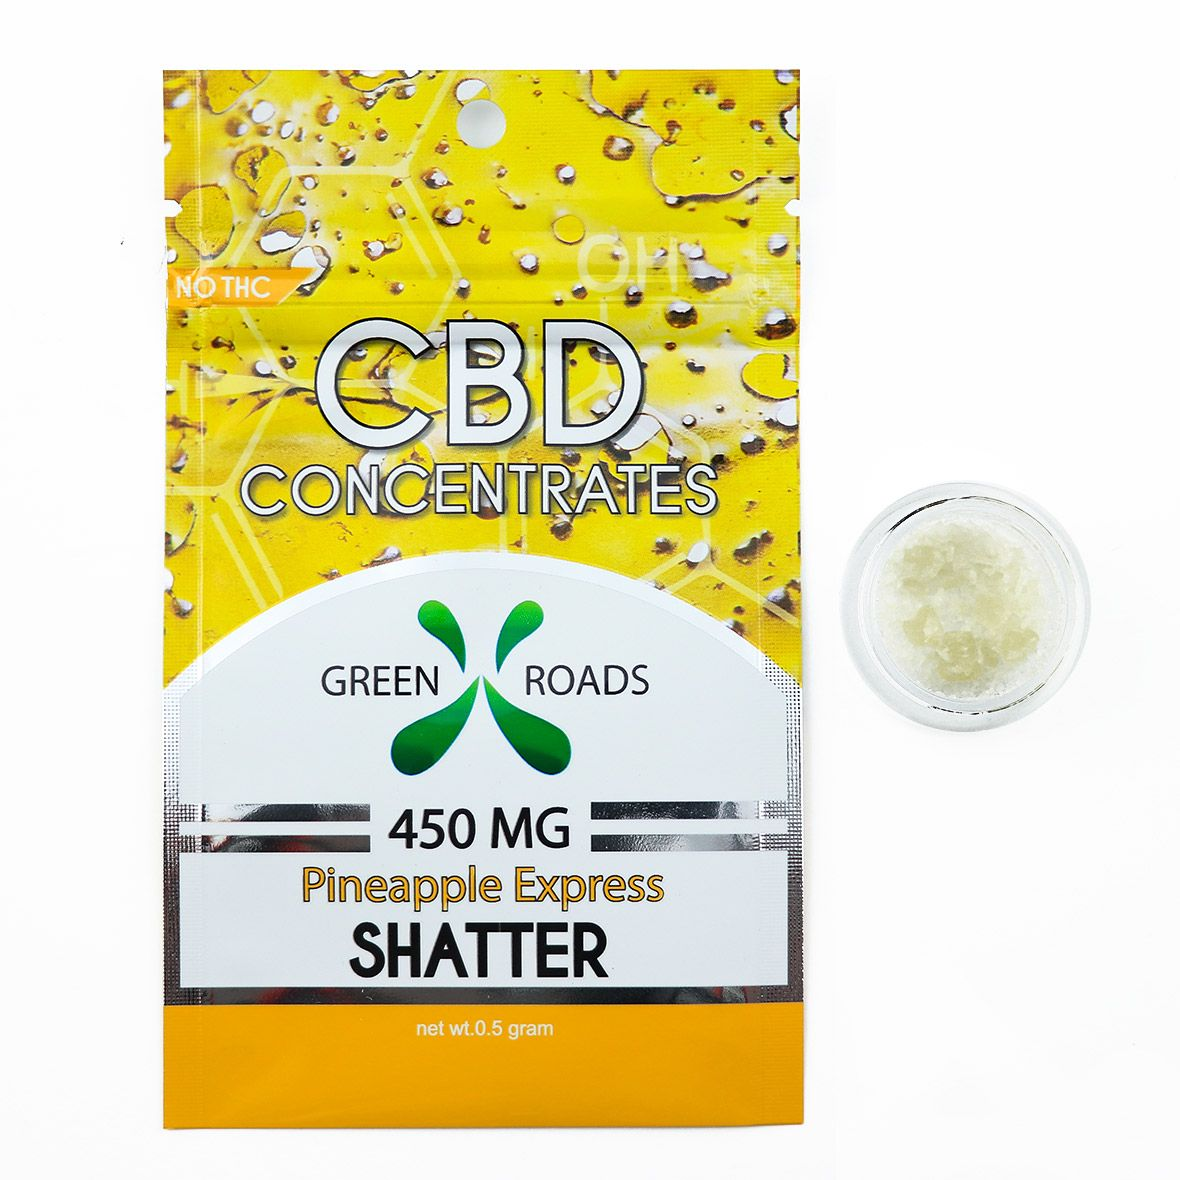 CBD Concentrates Shatter Pineapple Express 450 mg 0.5 g